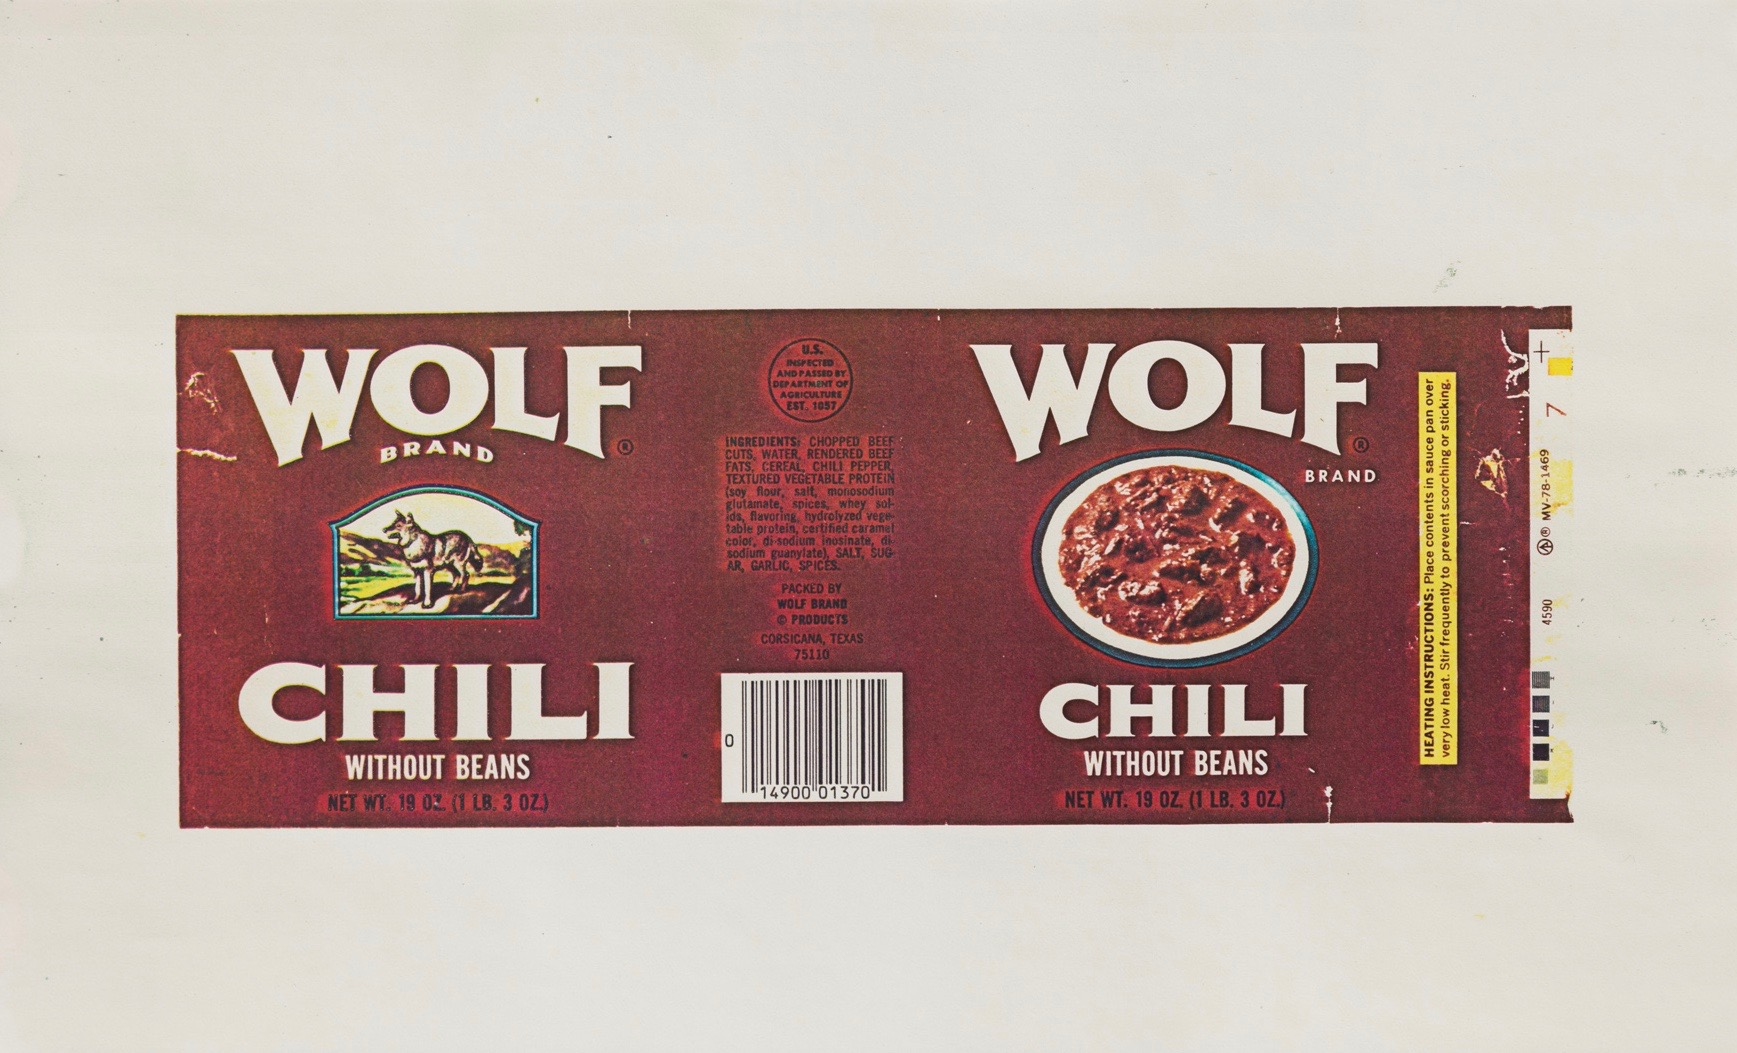 Hollis Frampton | Chili Brand Wolf Without Beans (1983)